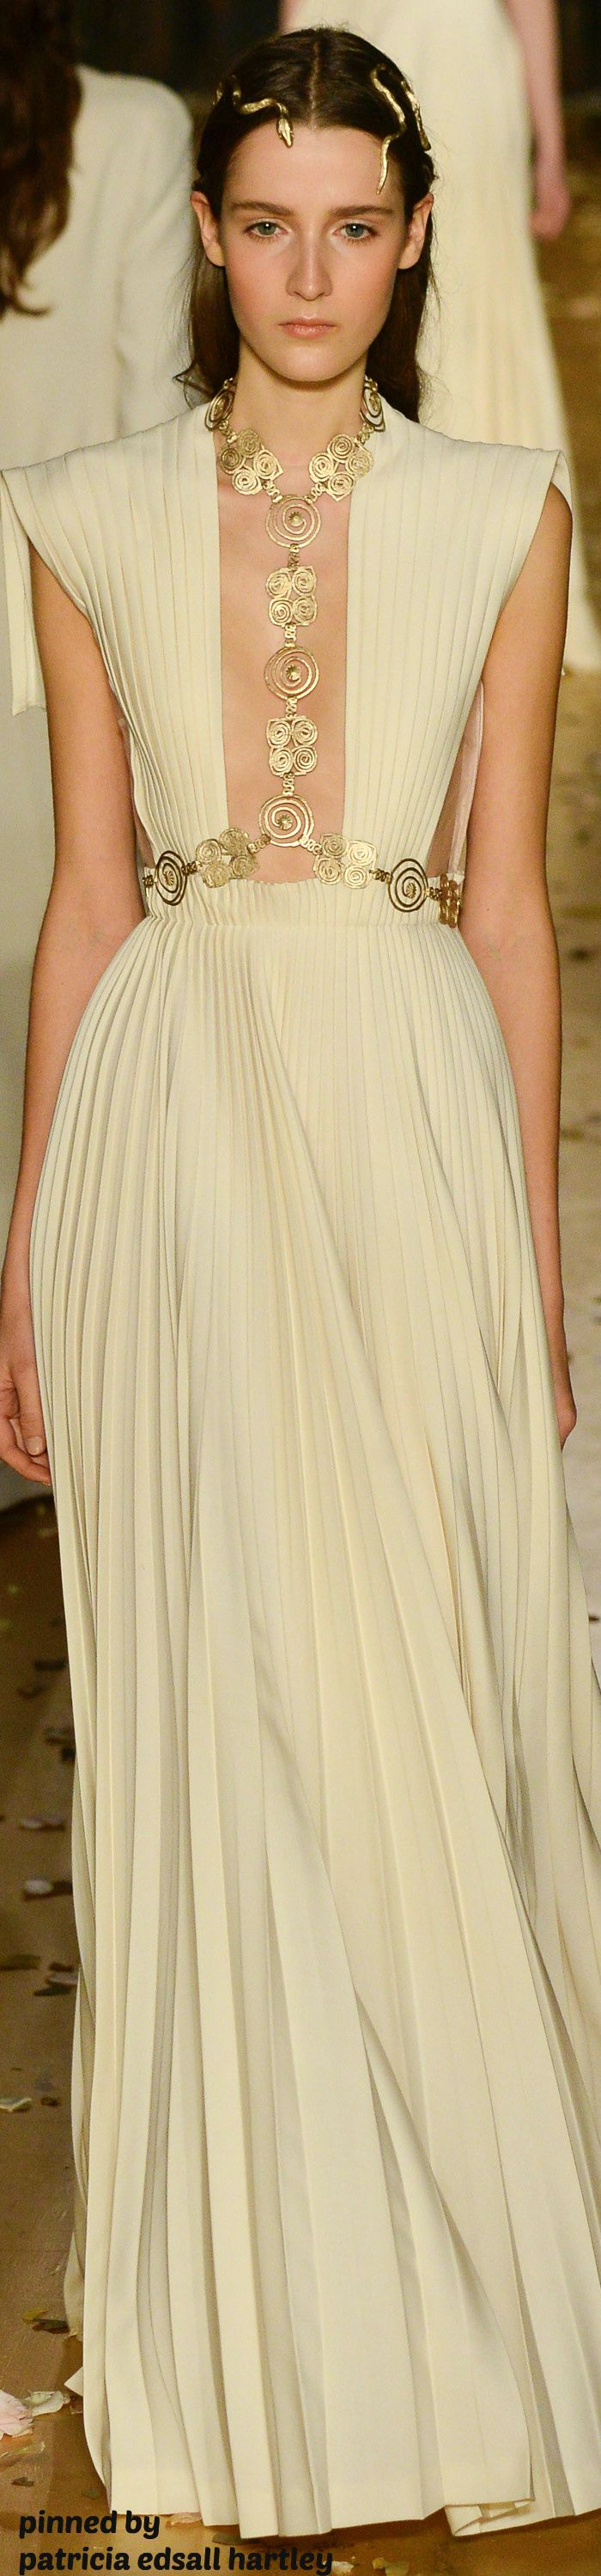 Valentino Couture Spring 2016, love the headdress - so very Dornish!